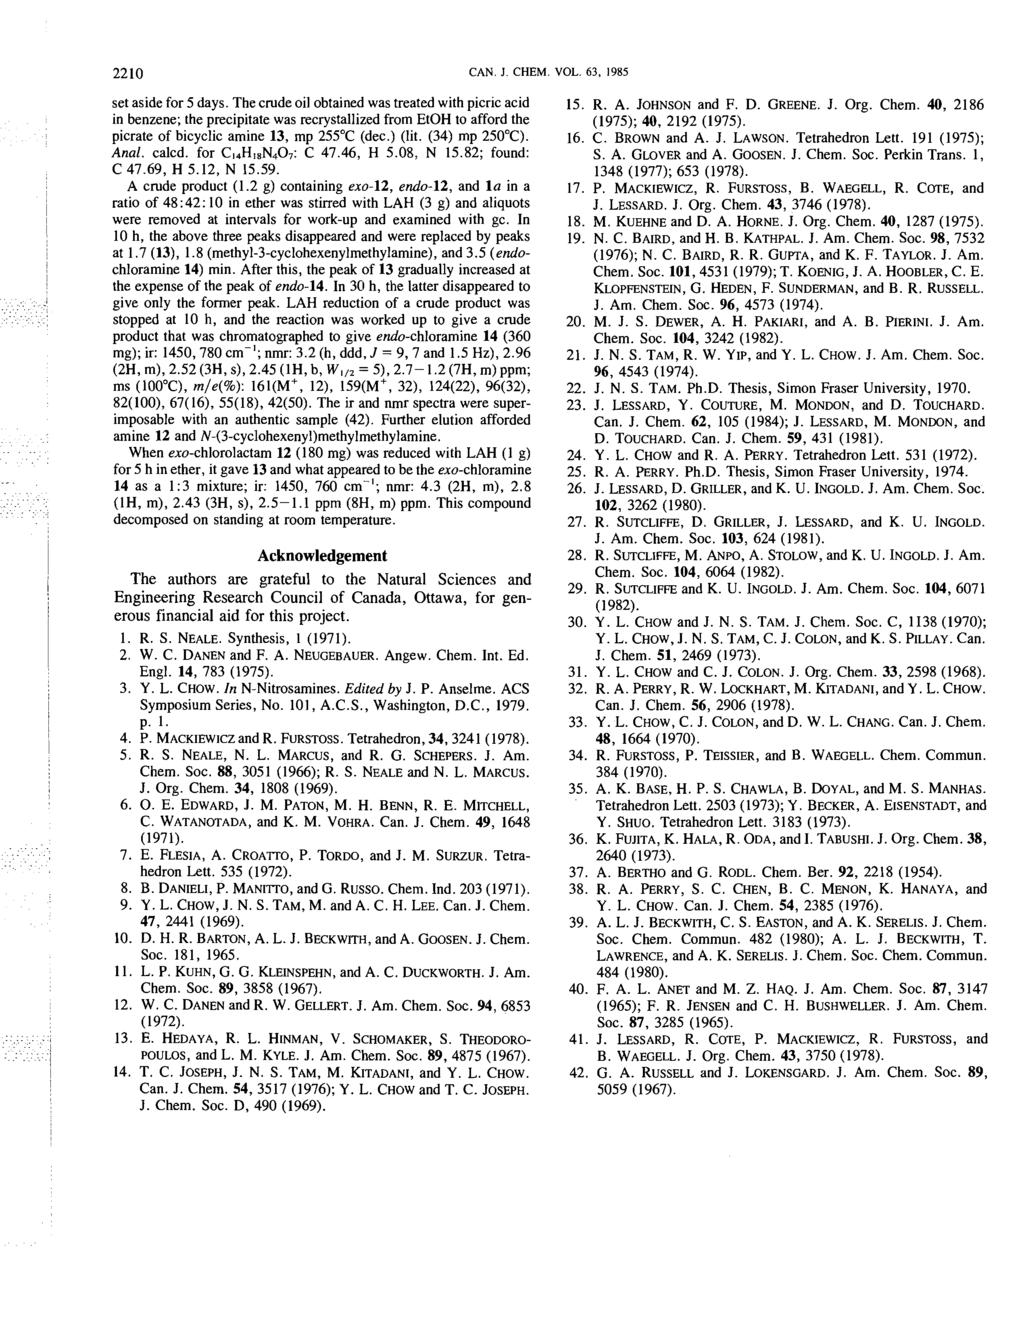 2210 CAN. J. CHEM. VOL. 63, 1985 set aside for 5 days.